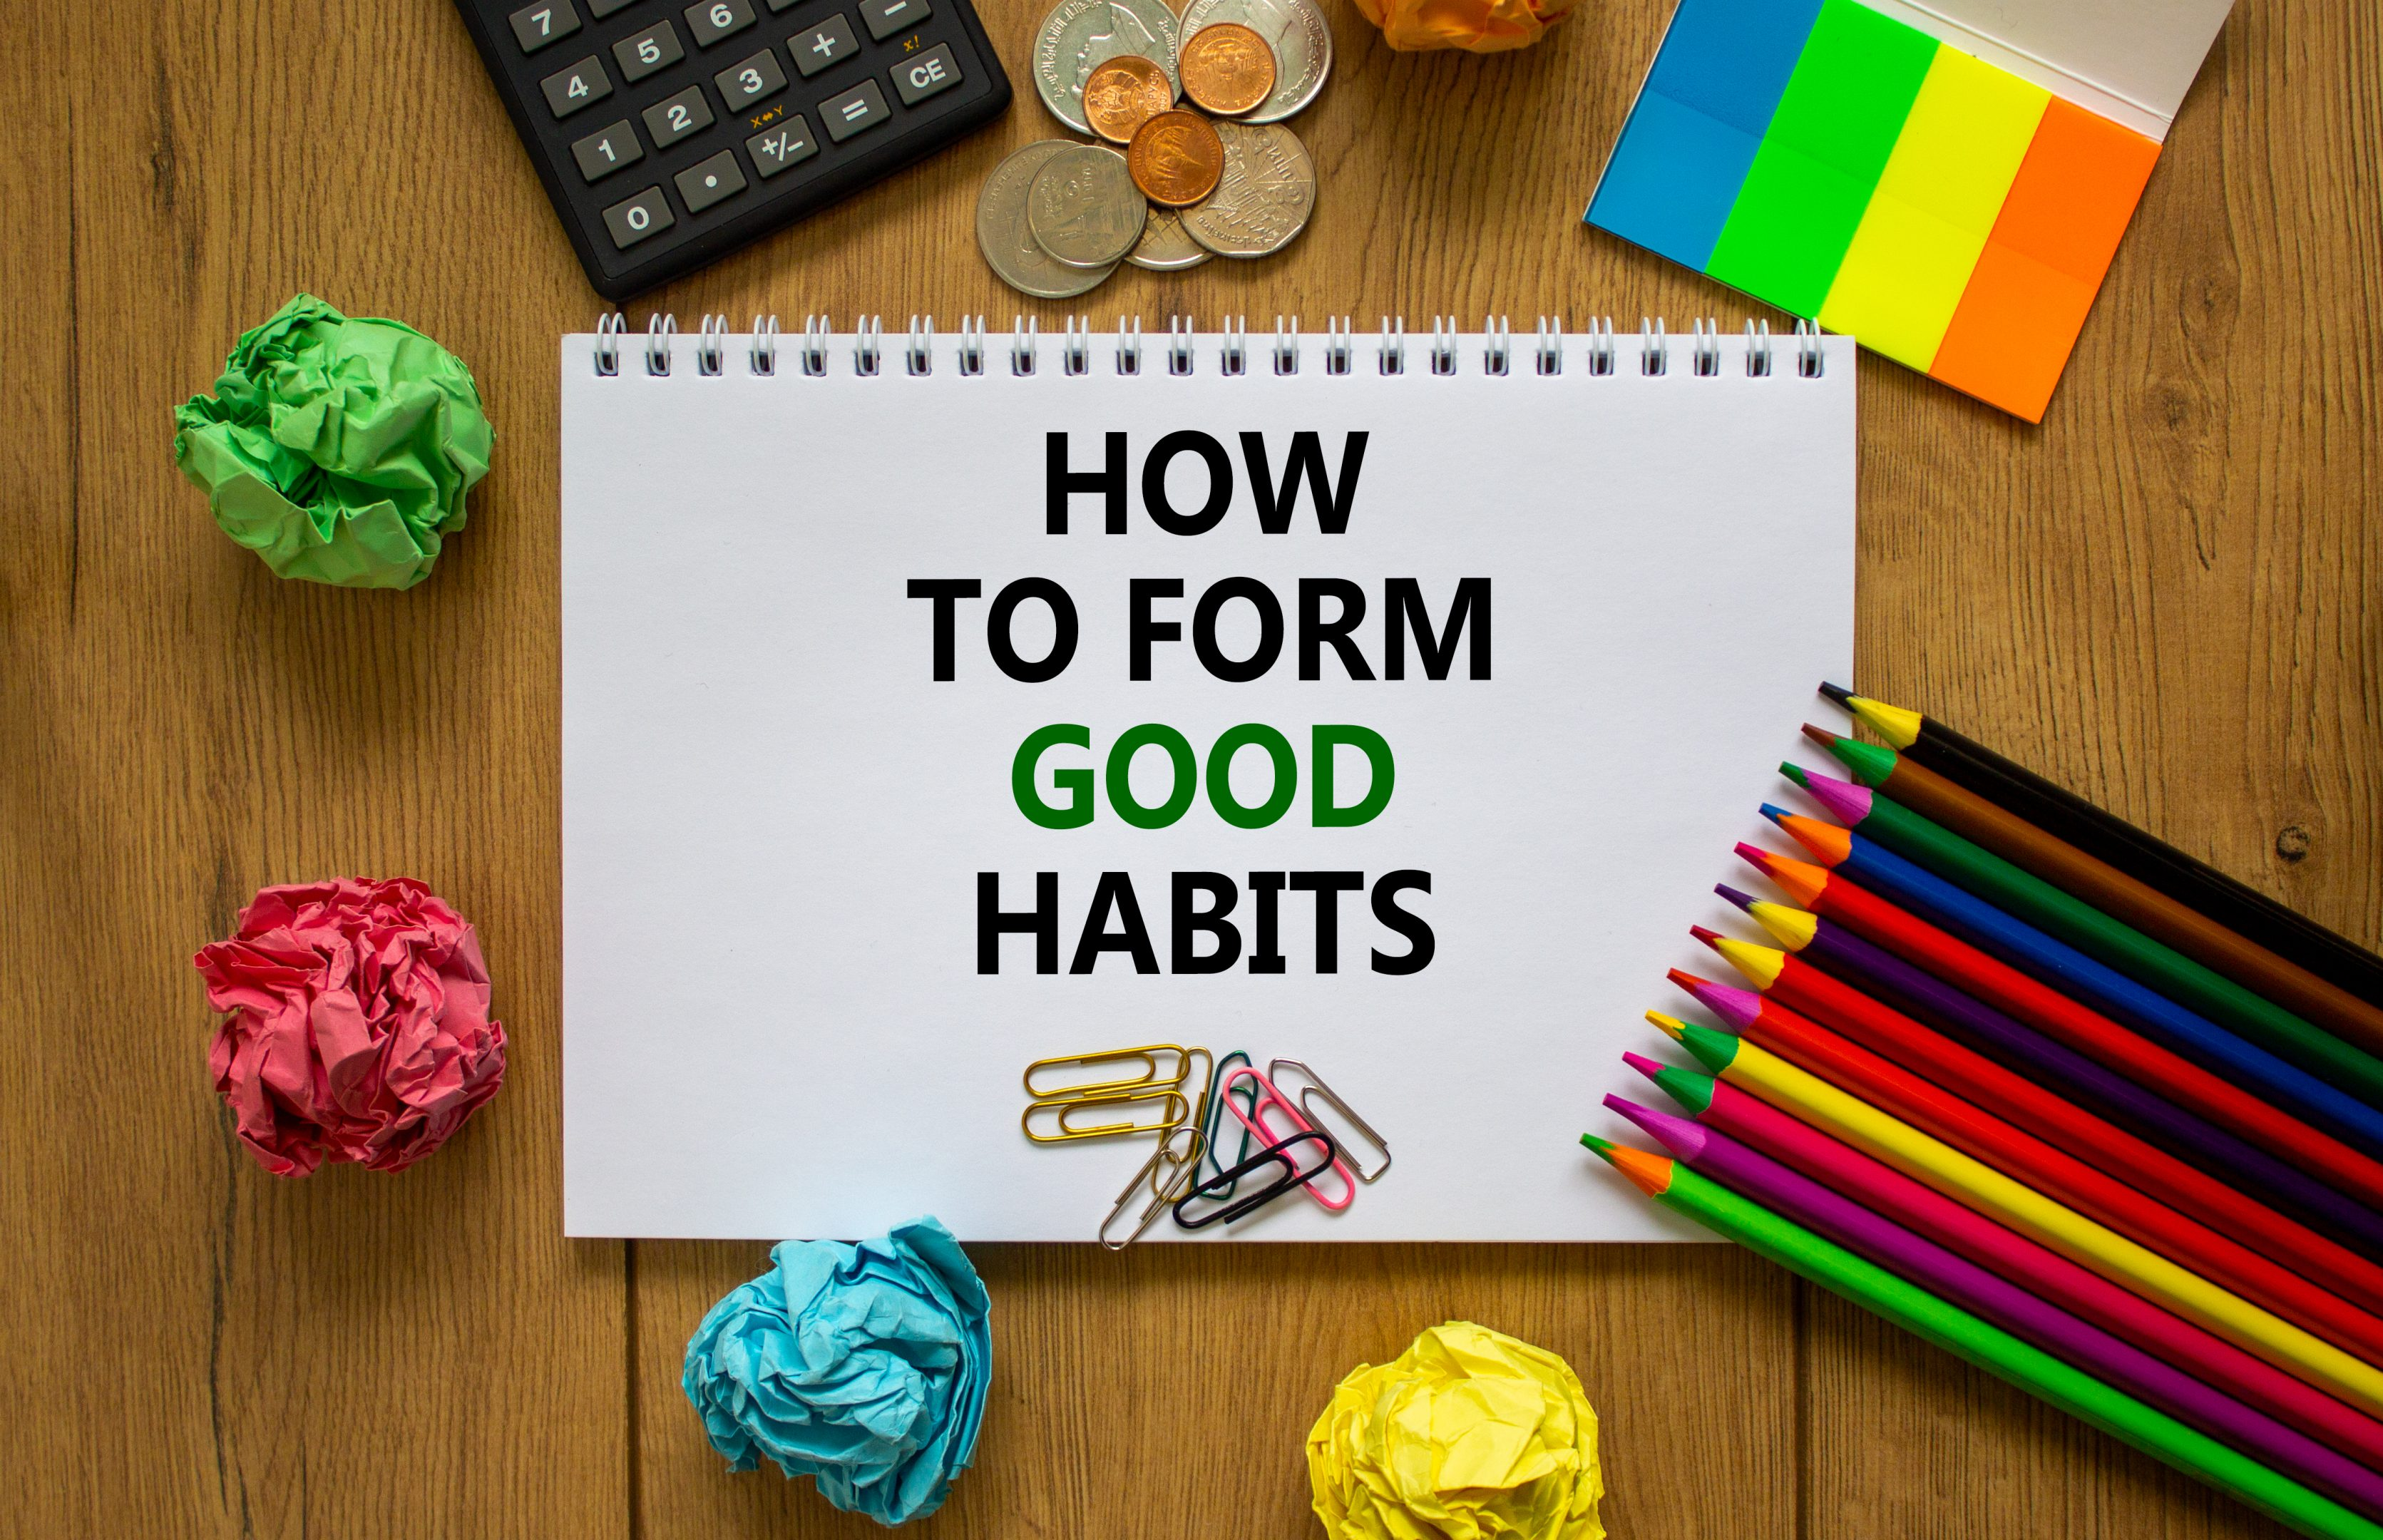 How to Form Good Habits is written on a piece of paper, surrounded by colored pencils, a calculator, and crumpled colored paper.